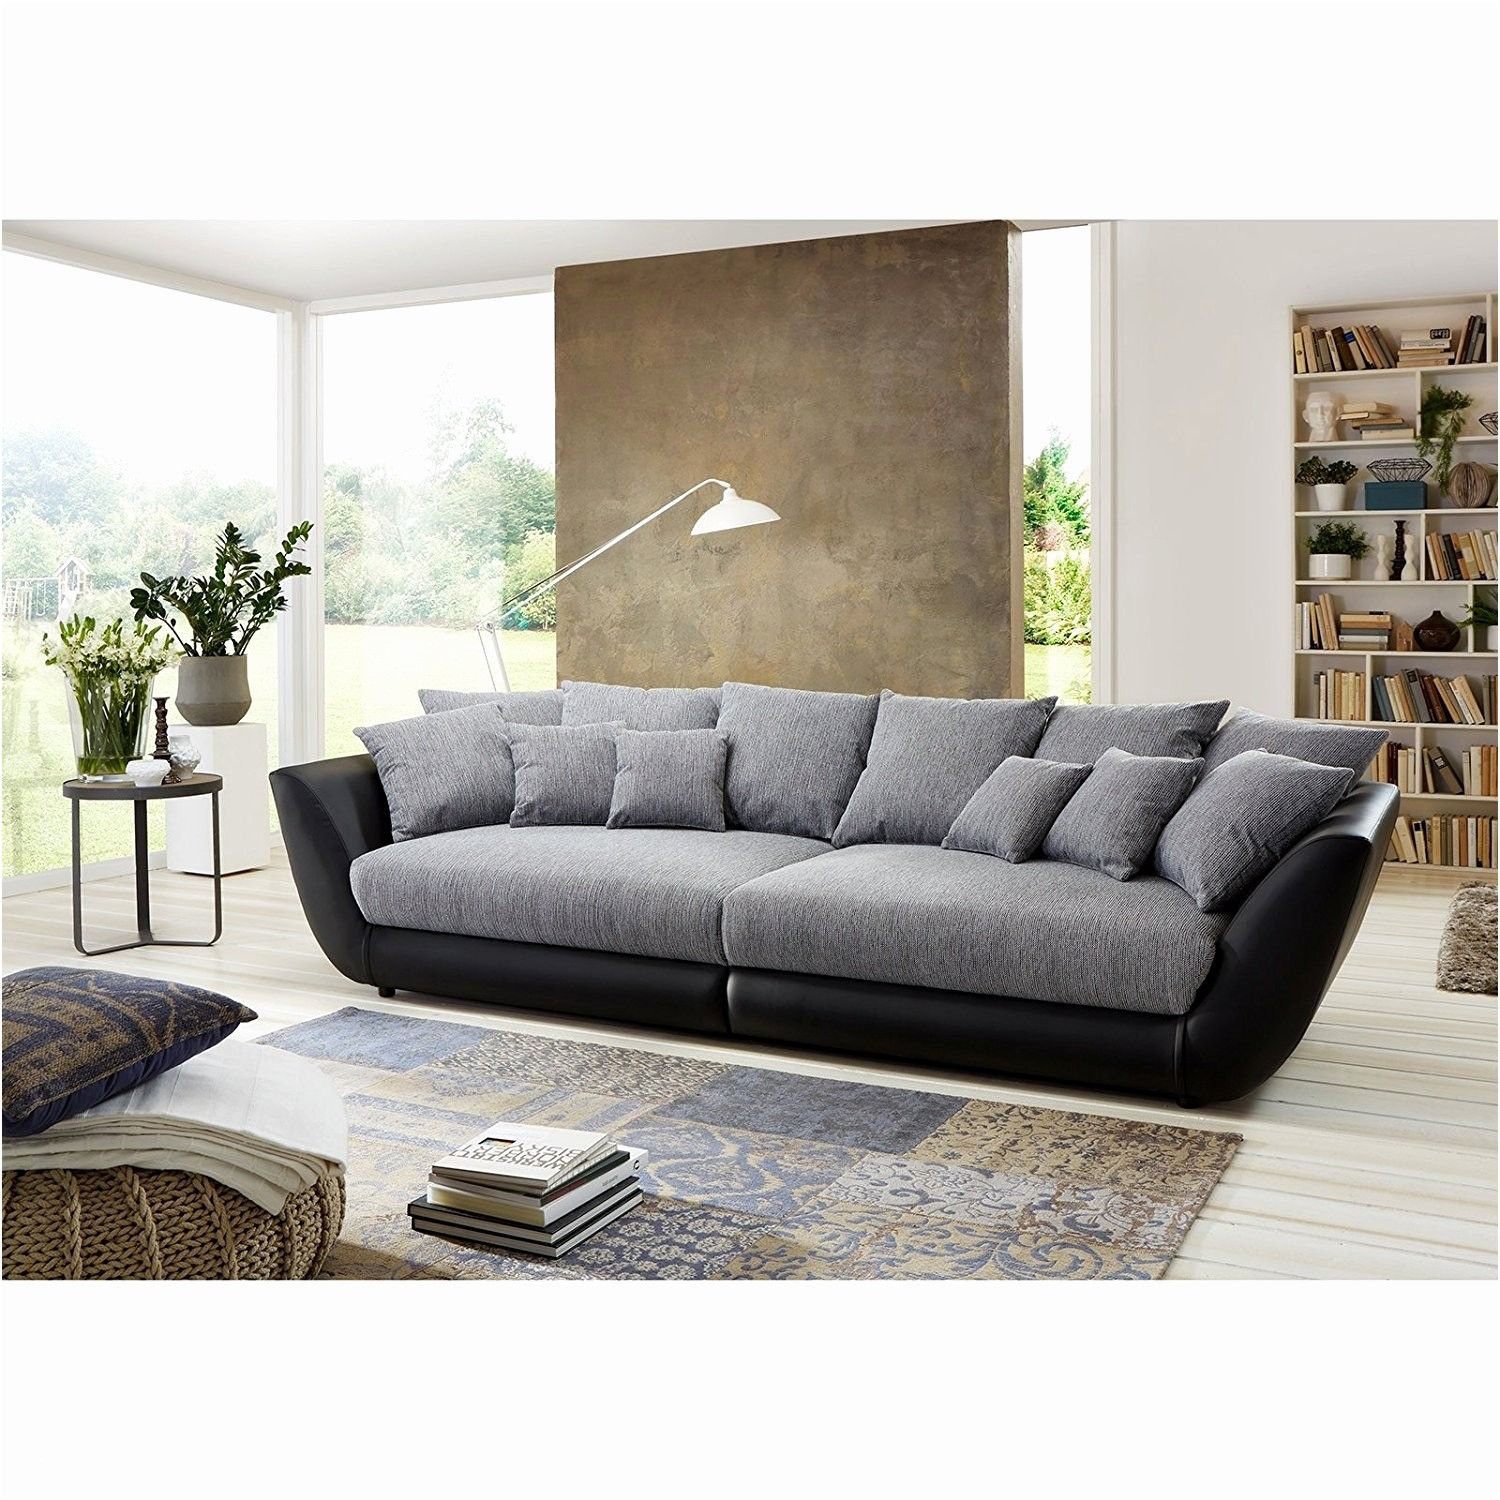 Ideal Schlafsofa Kunstleder Schwarz Sectional Sofa With Chaise Large Living Room Furniture Living Room Furniture Inspiration